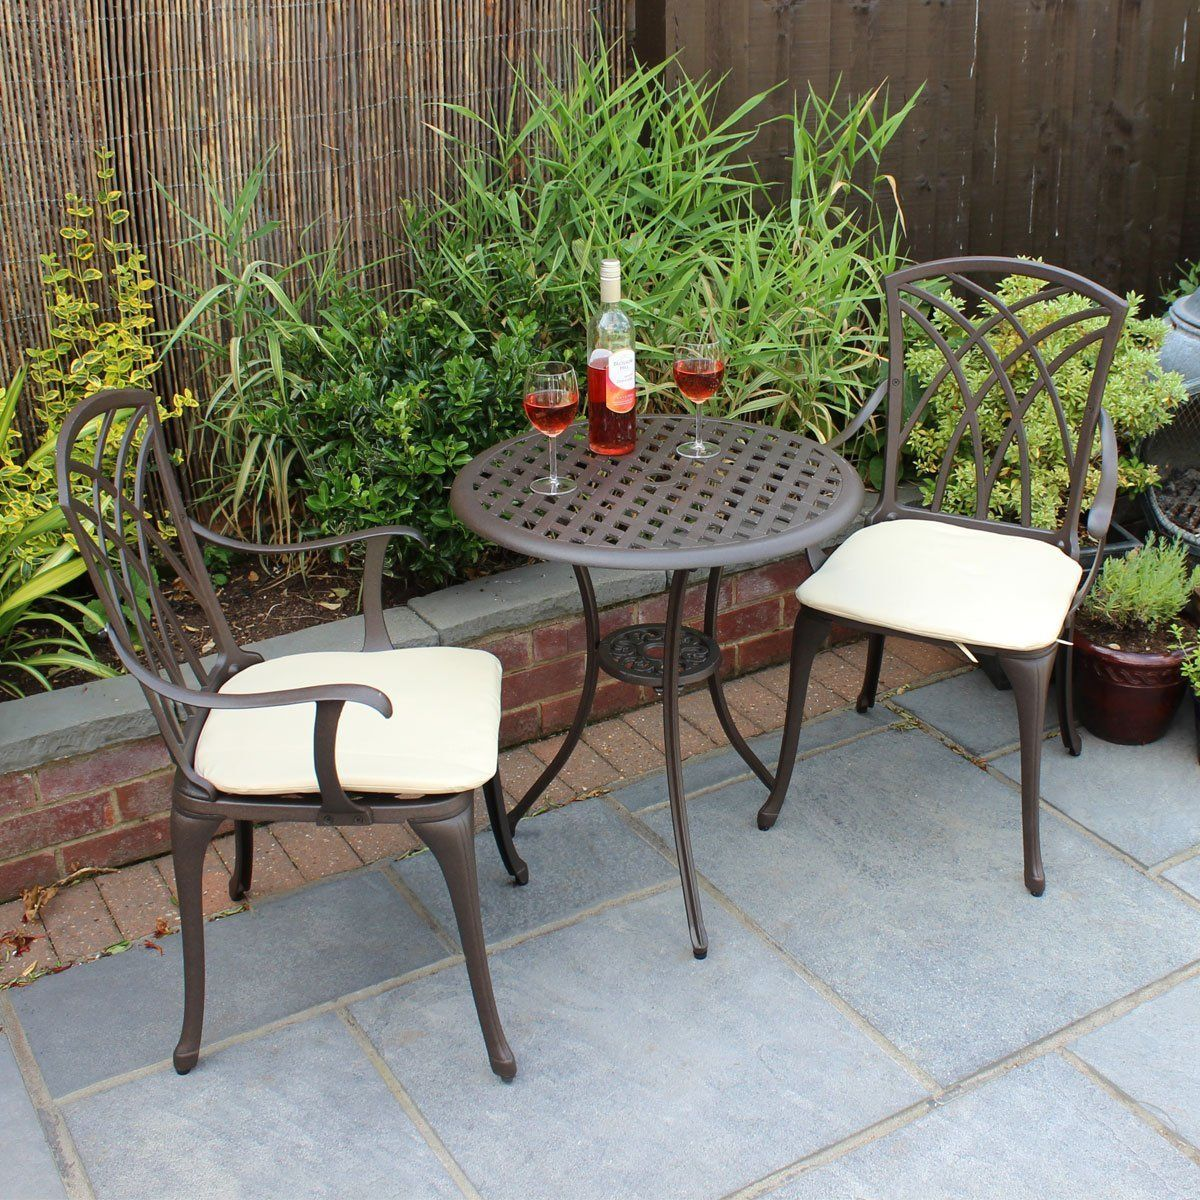 Bentley Garden Furniture 3 Piece Cast Aluminium Bistro Set Table & 2 ...